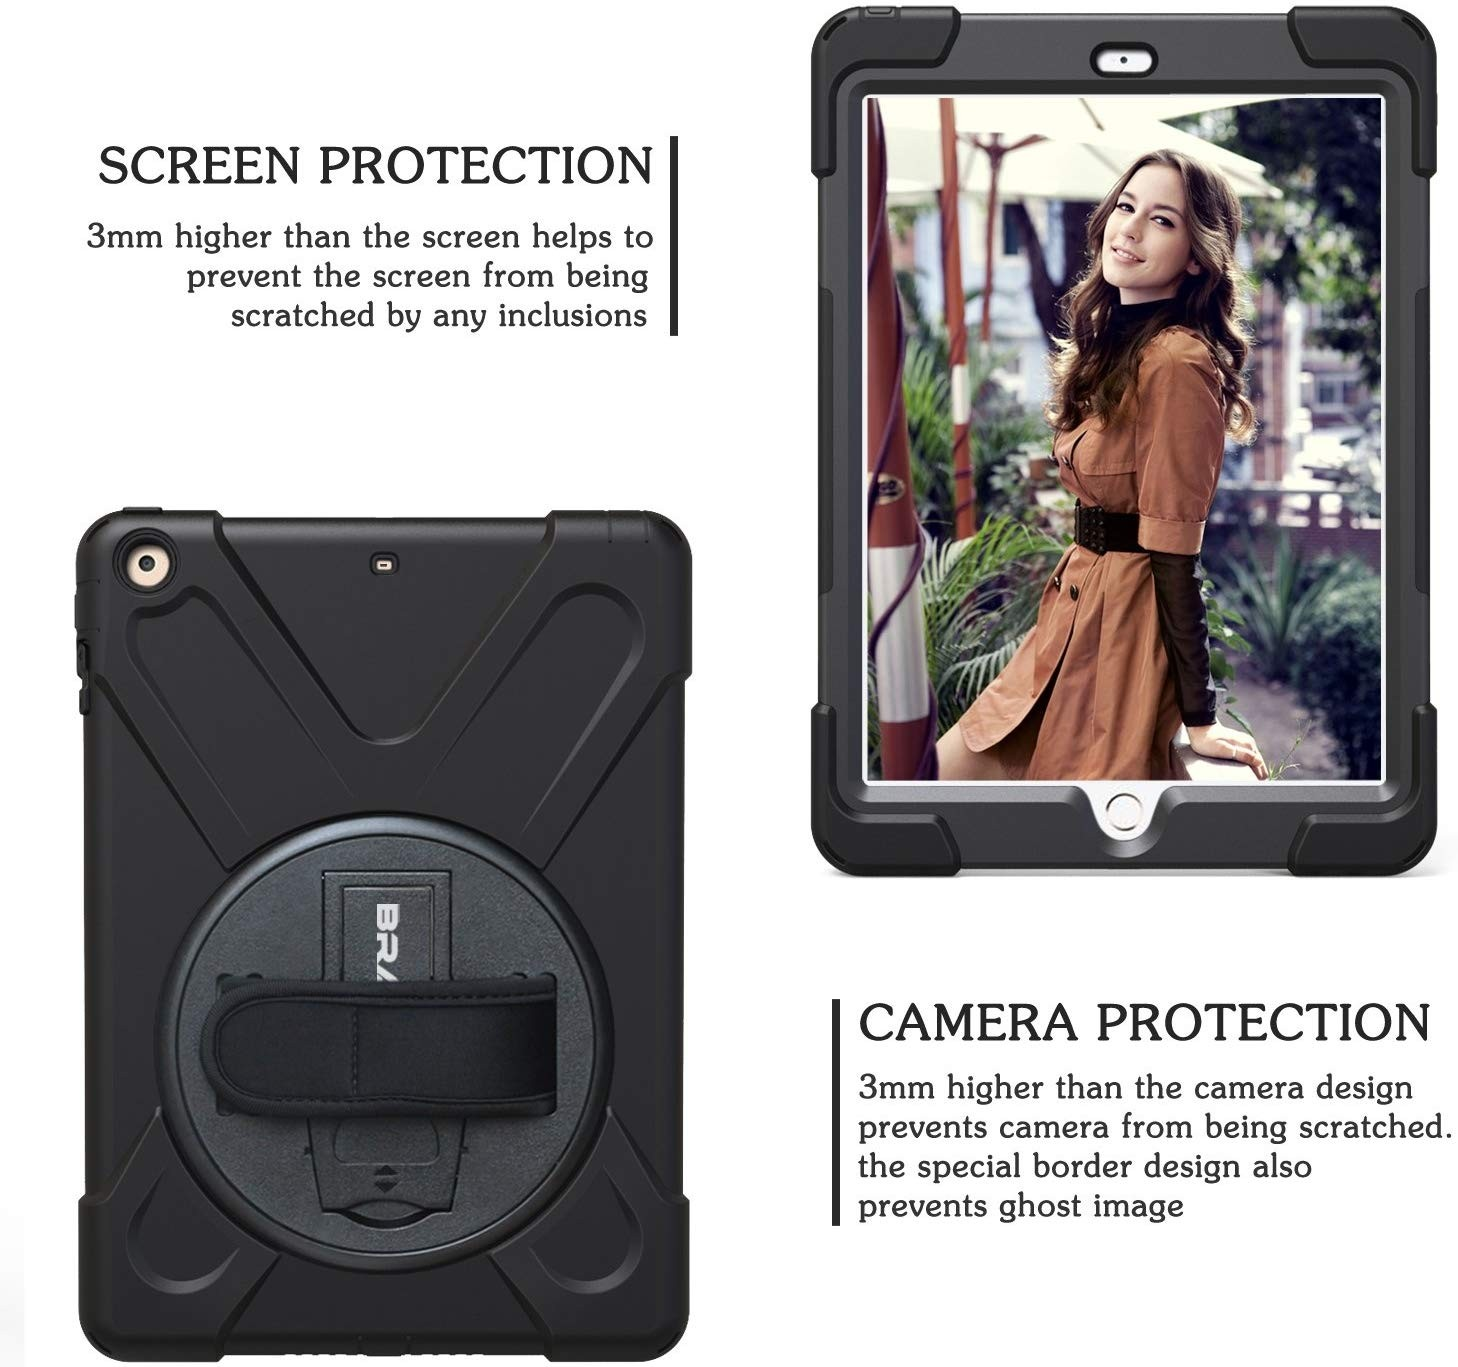 BRAECN iPad Air Shockproof Case [Heavy Duty] Full-Body Rugged Protective Case with a 360 Degree Swivel Kickstand/a Hand Strap/a Shoulder Strap for Apple iPad Air - Black, HD-AIR-BLK